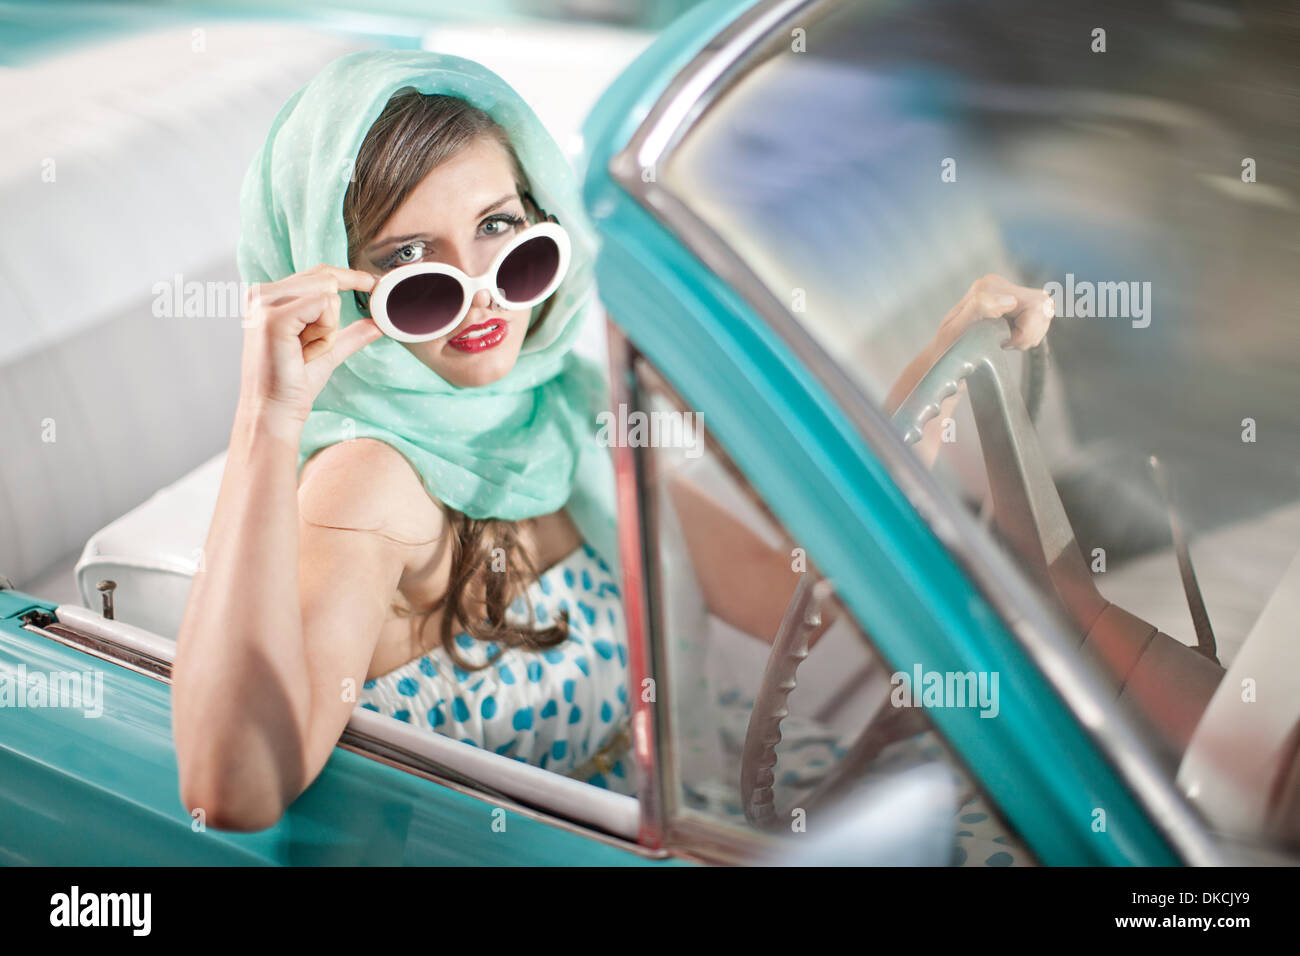 Woman in headscarf lowering sunglasses in vintage convertible - Stock Image